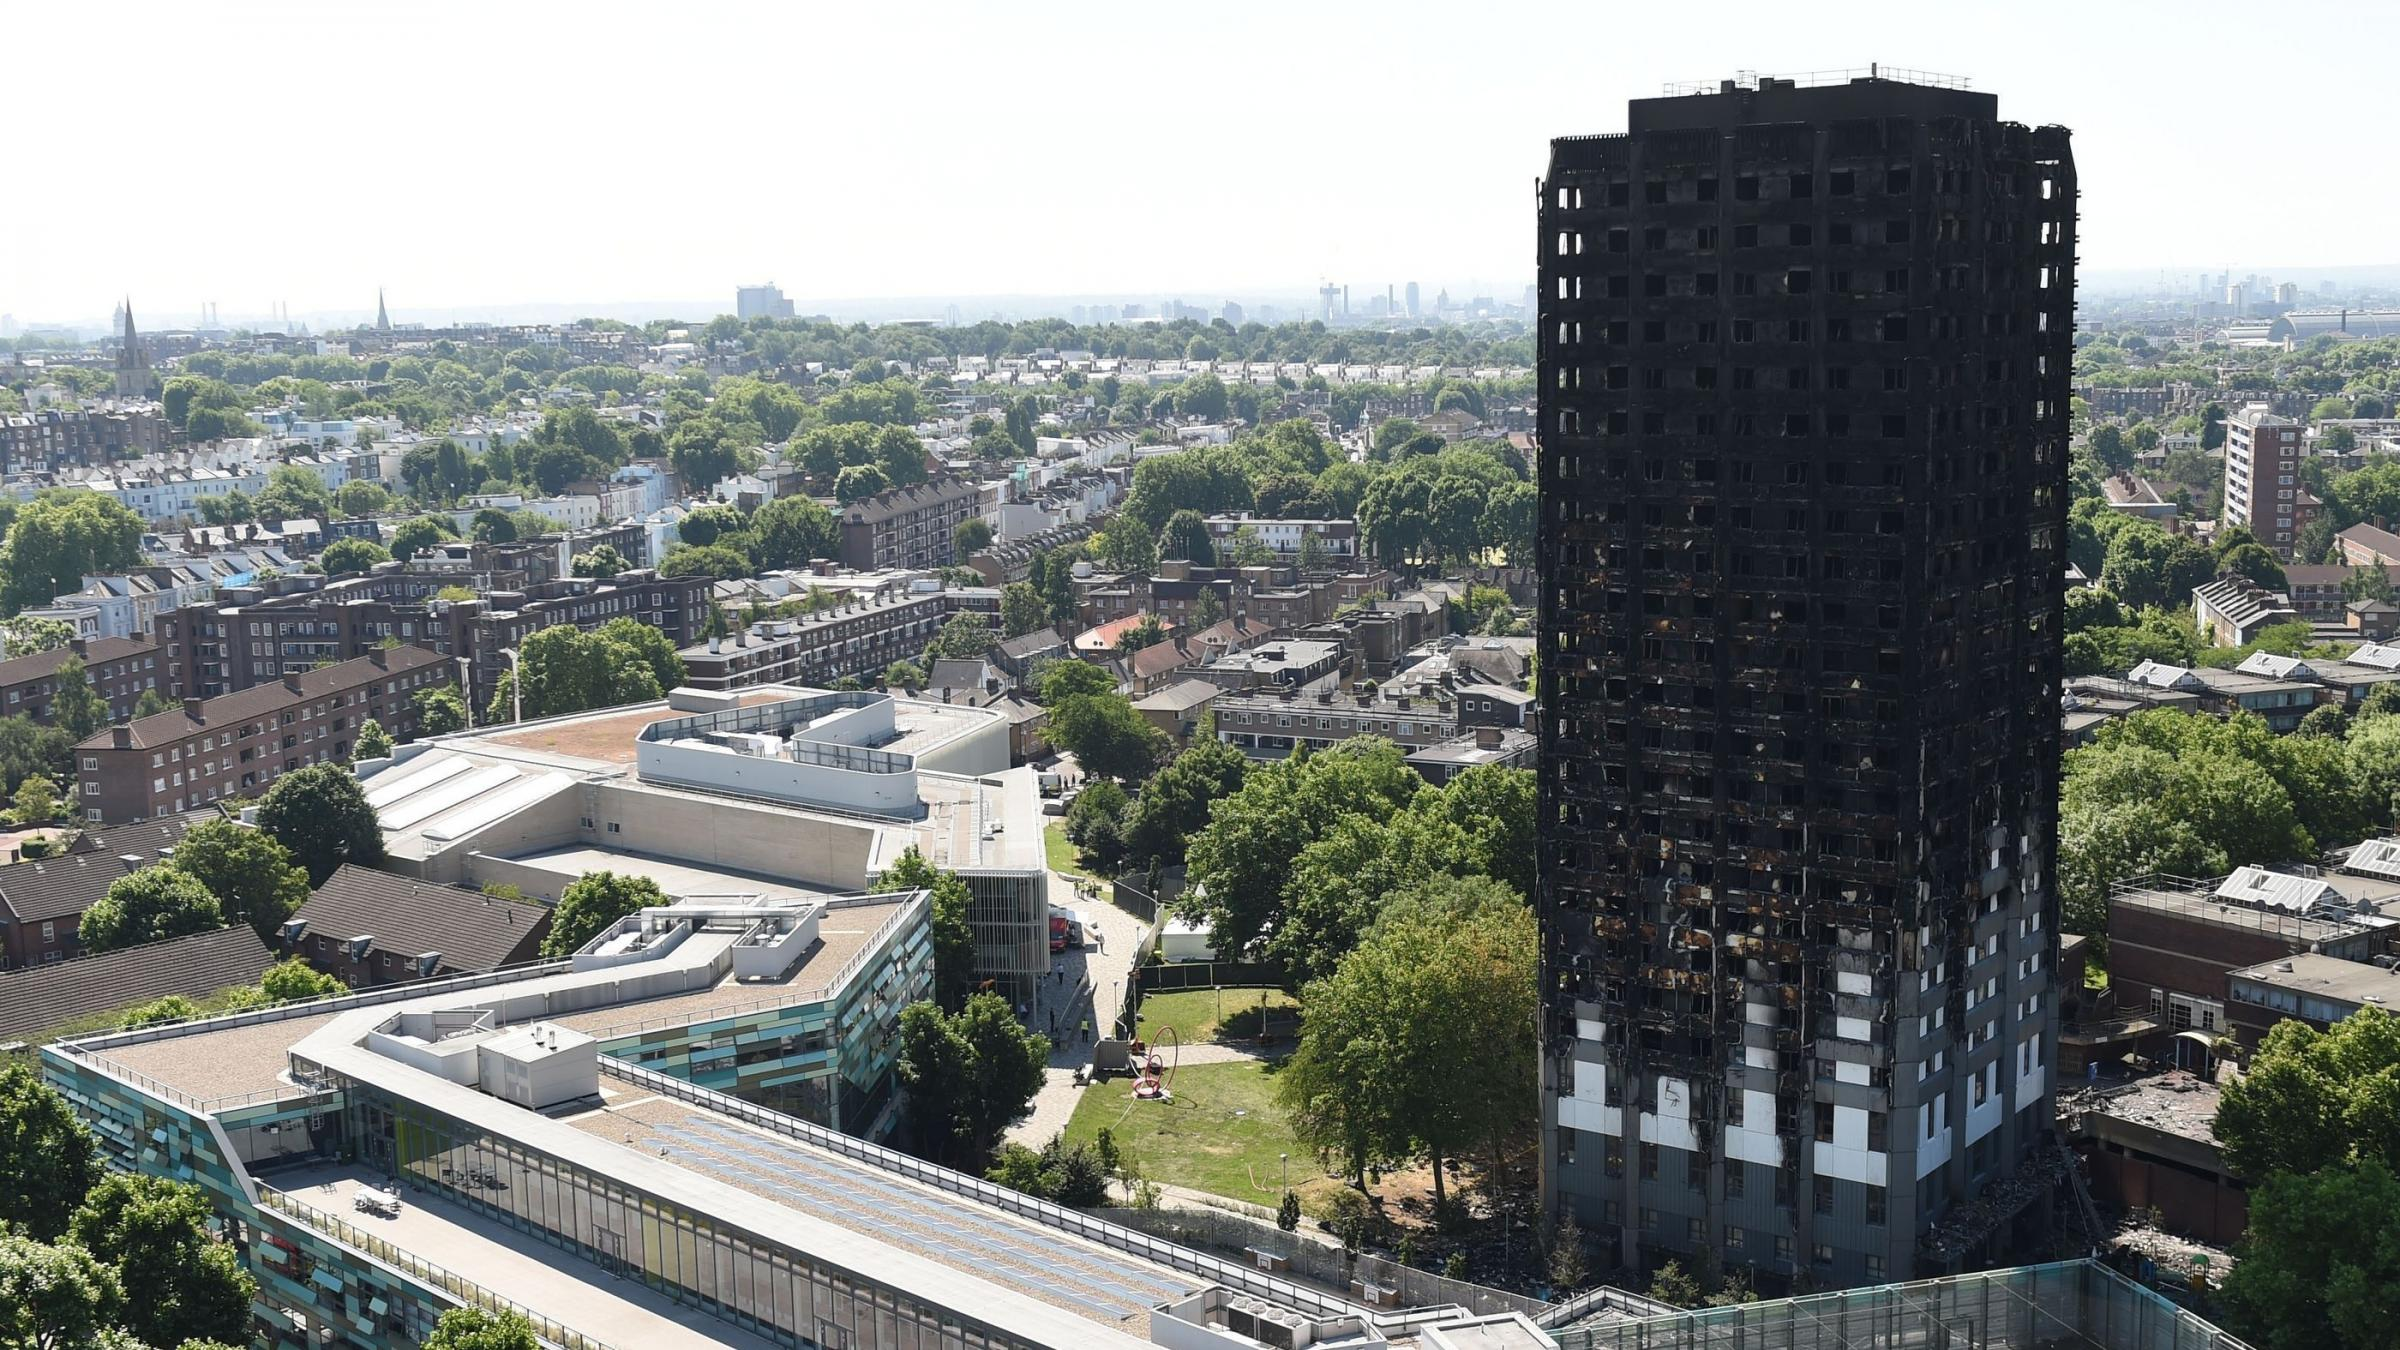 Number of people assumed dead in London tower block blaze to rise